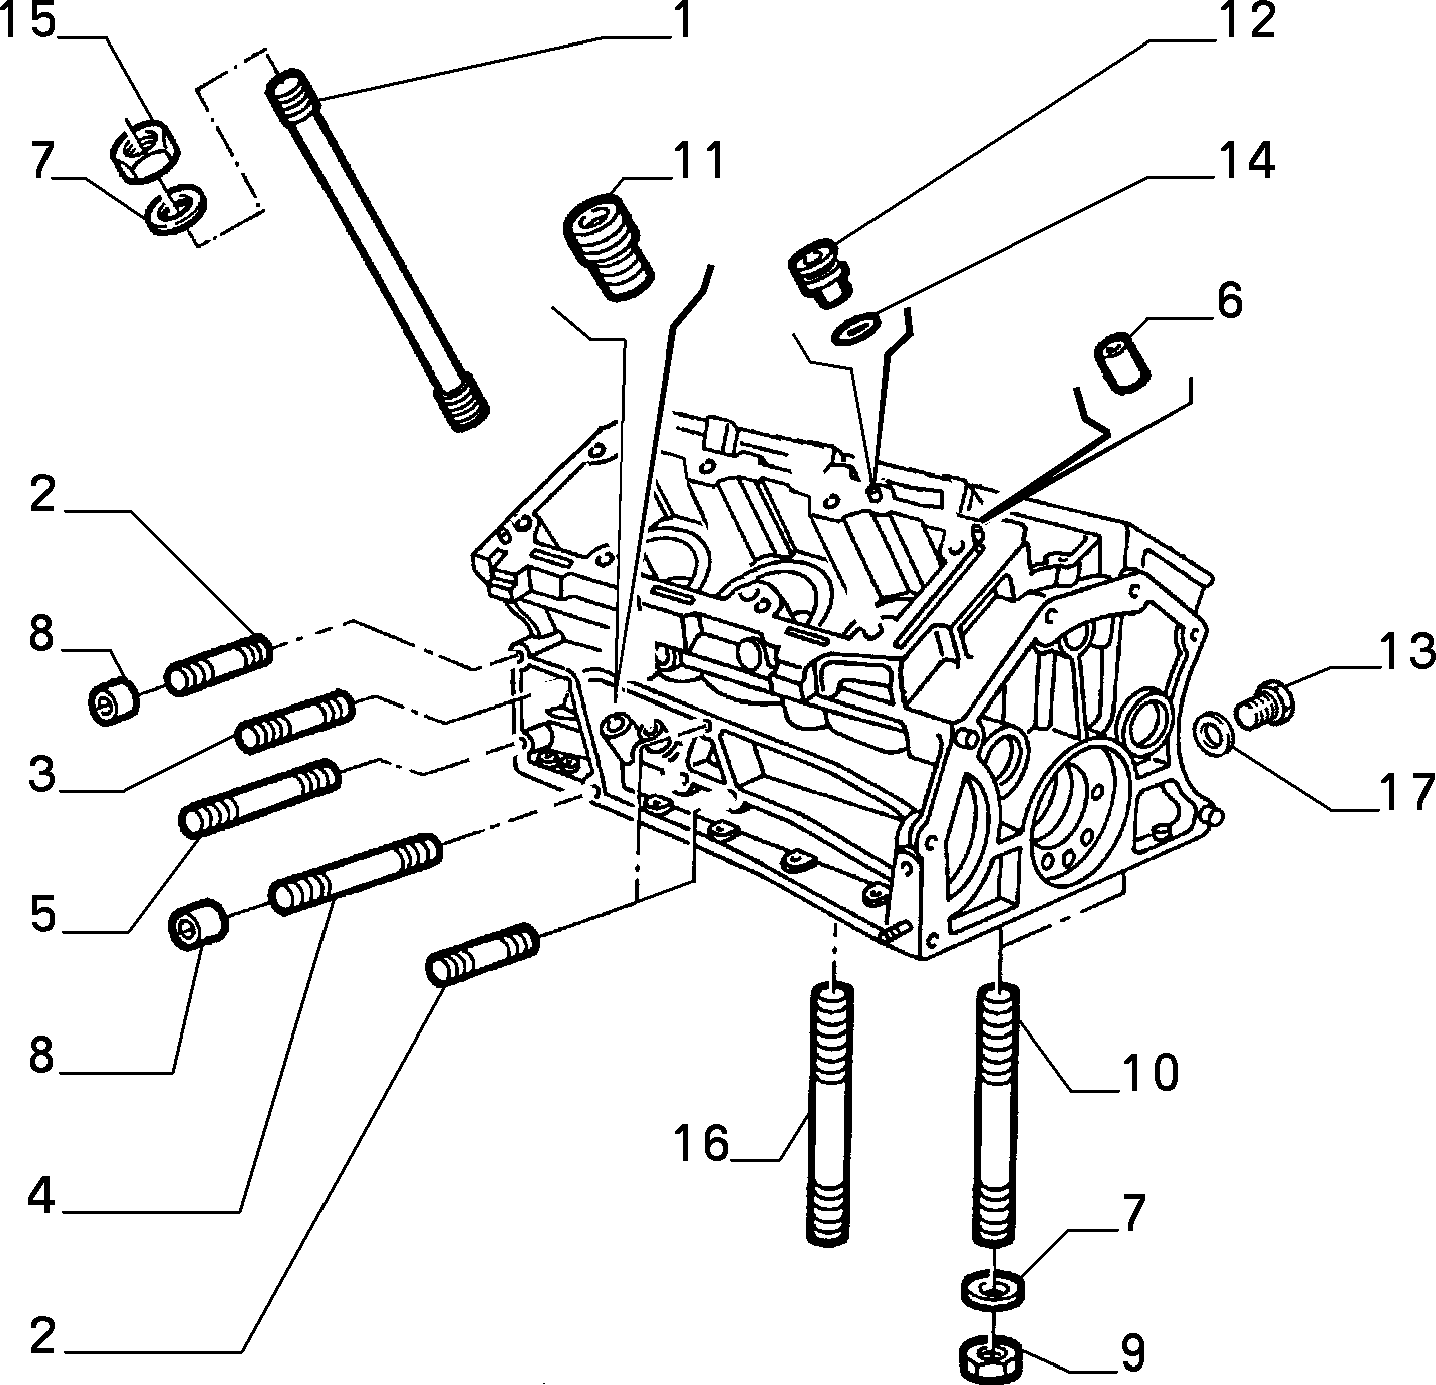 [TR_4107] 350 Chevy Engine Diagram Wiring Diagram